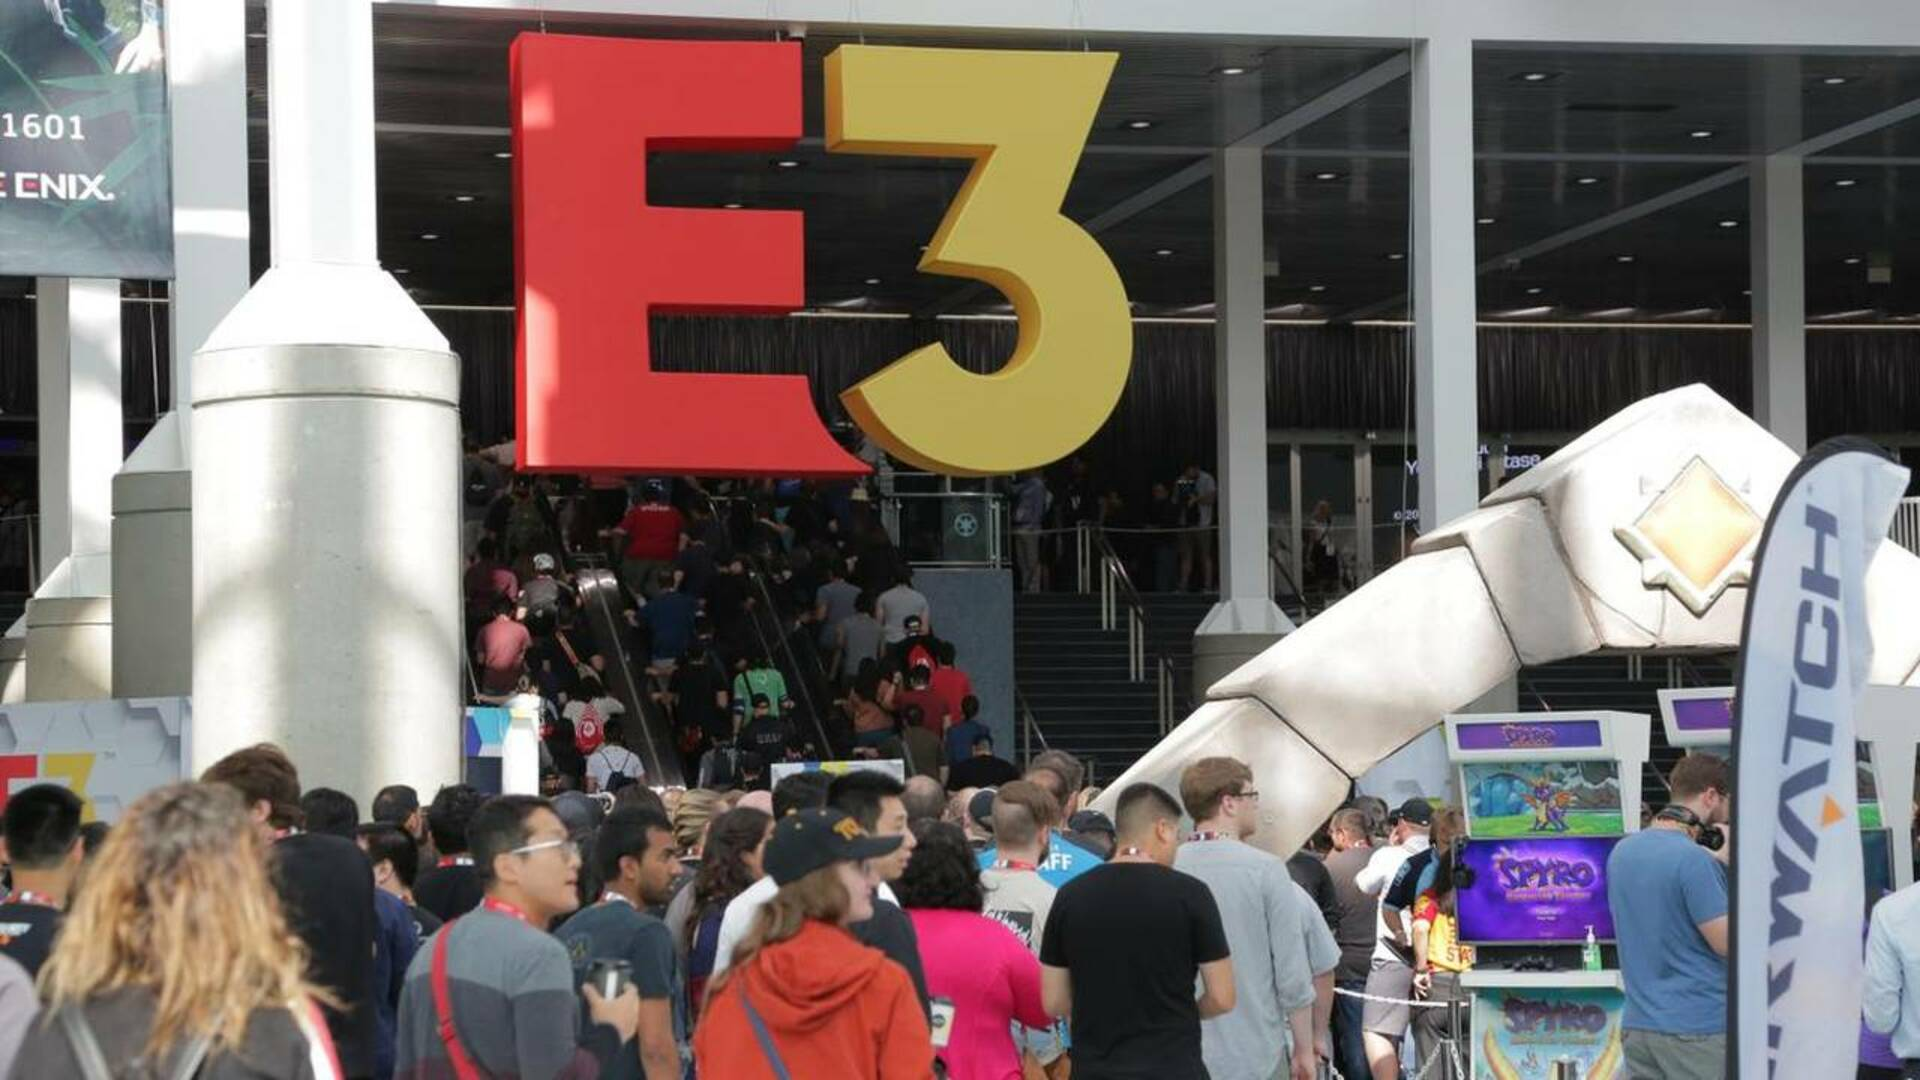 ESA Leaks Personal Information of Over 2000 Journalists and Analysts Gathered For E3